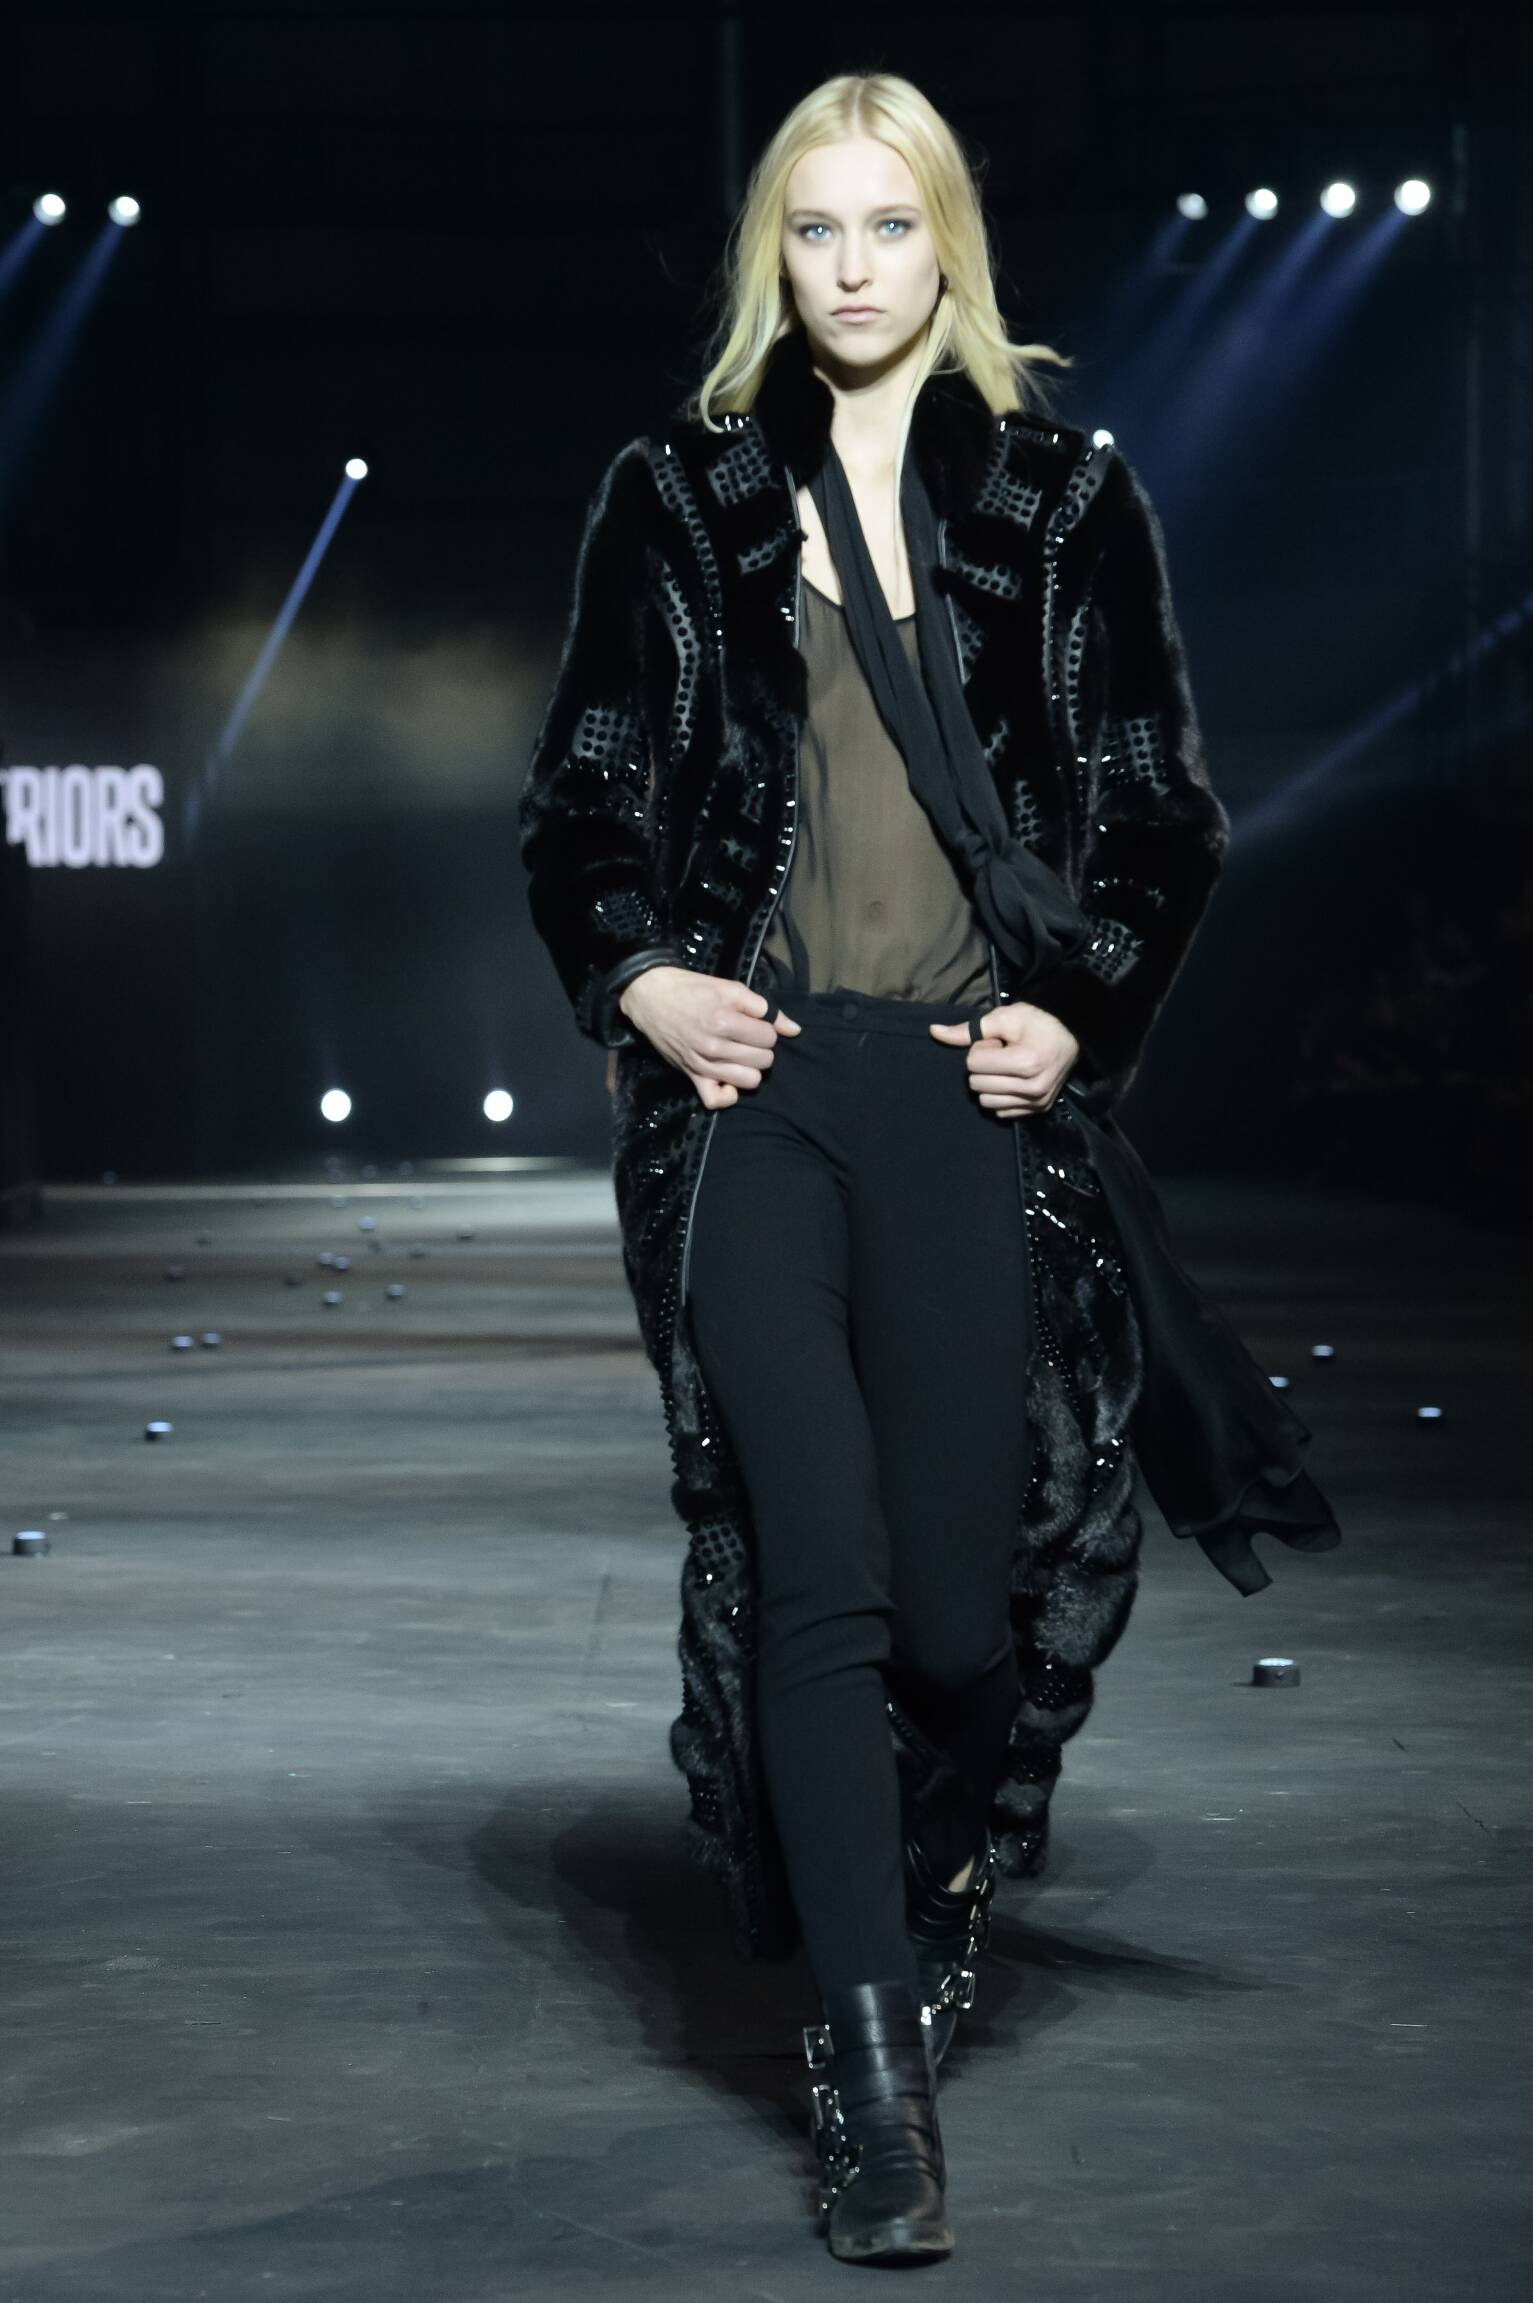 2015 Fashion Woman Model Philipp Plein Collection Catwalk